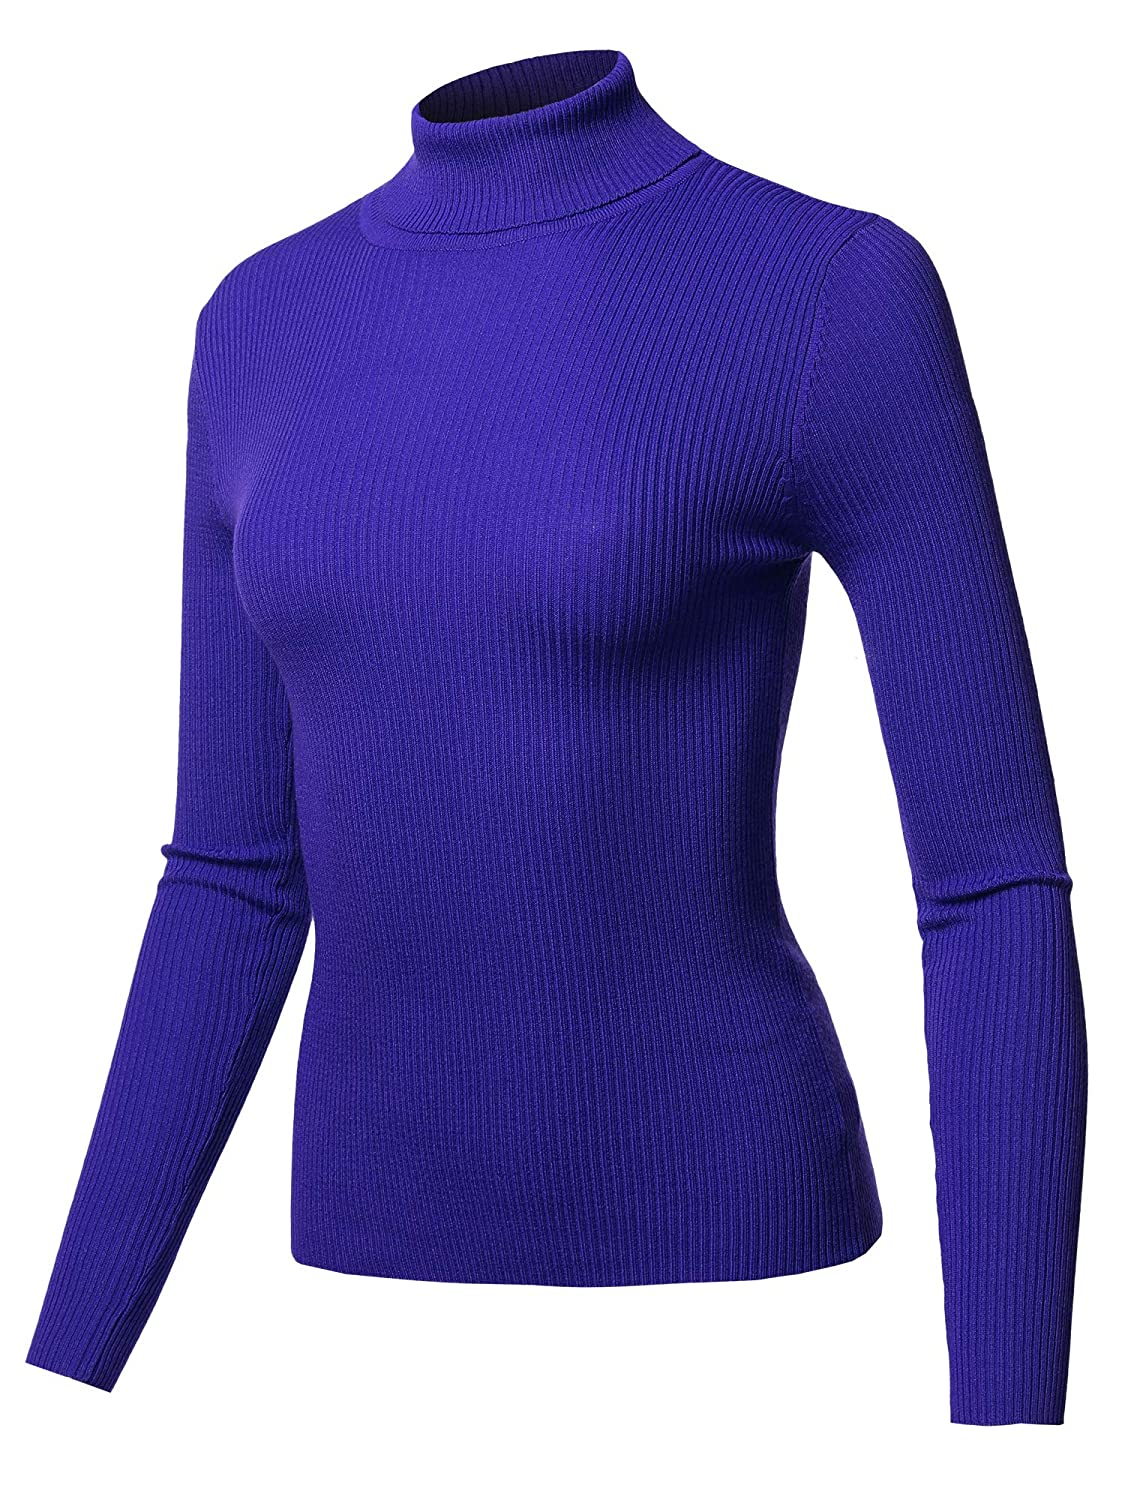 Fewswl0012 Royal Made by Emma Women's Basic Slim Fit Lightweight Ribbed Turtleneck Sweater